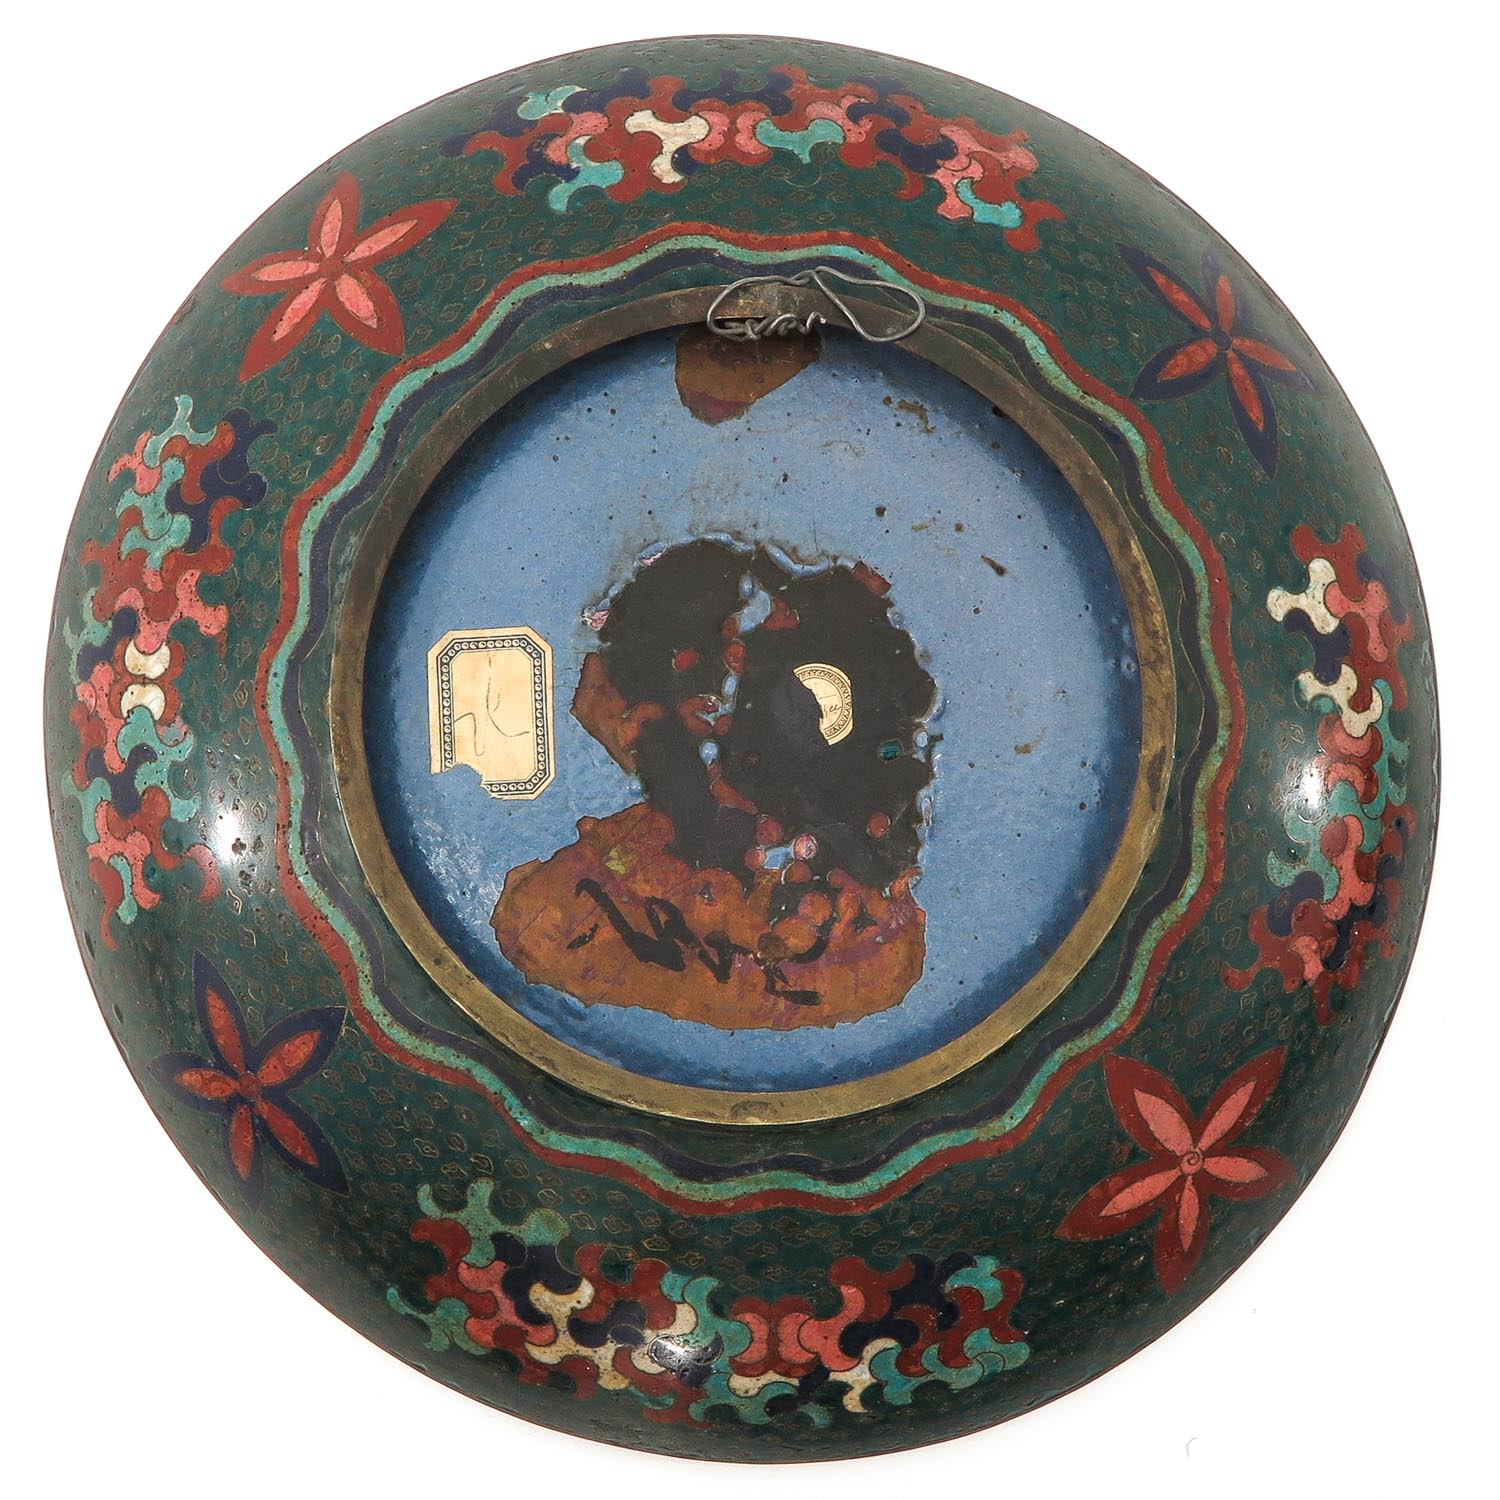 A Pair of Cloisonne Chargers - Image 6 of 10